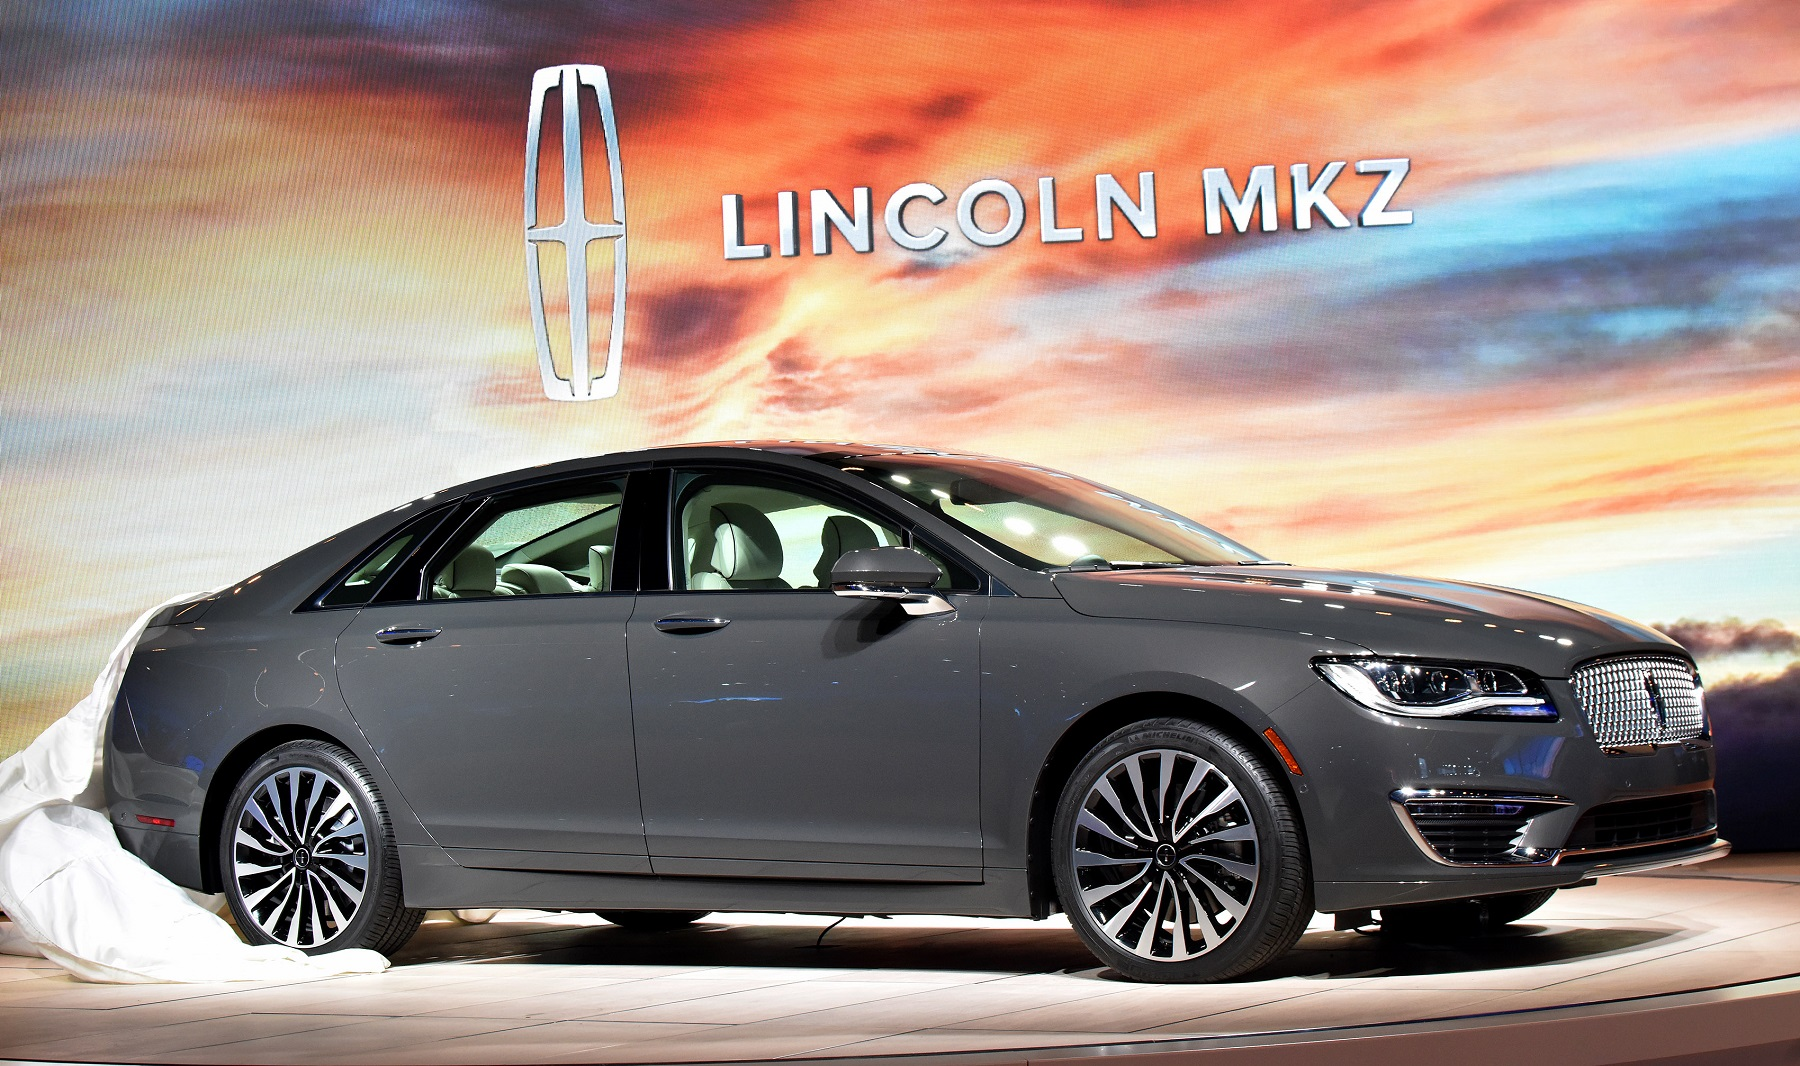 2017 Lincoln Mkz Quiet Luxury With Potent Power Bonus Wheels